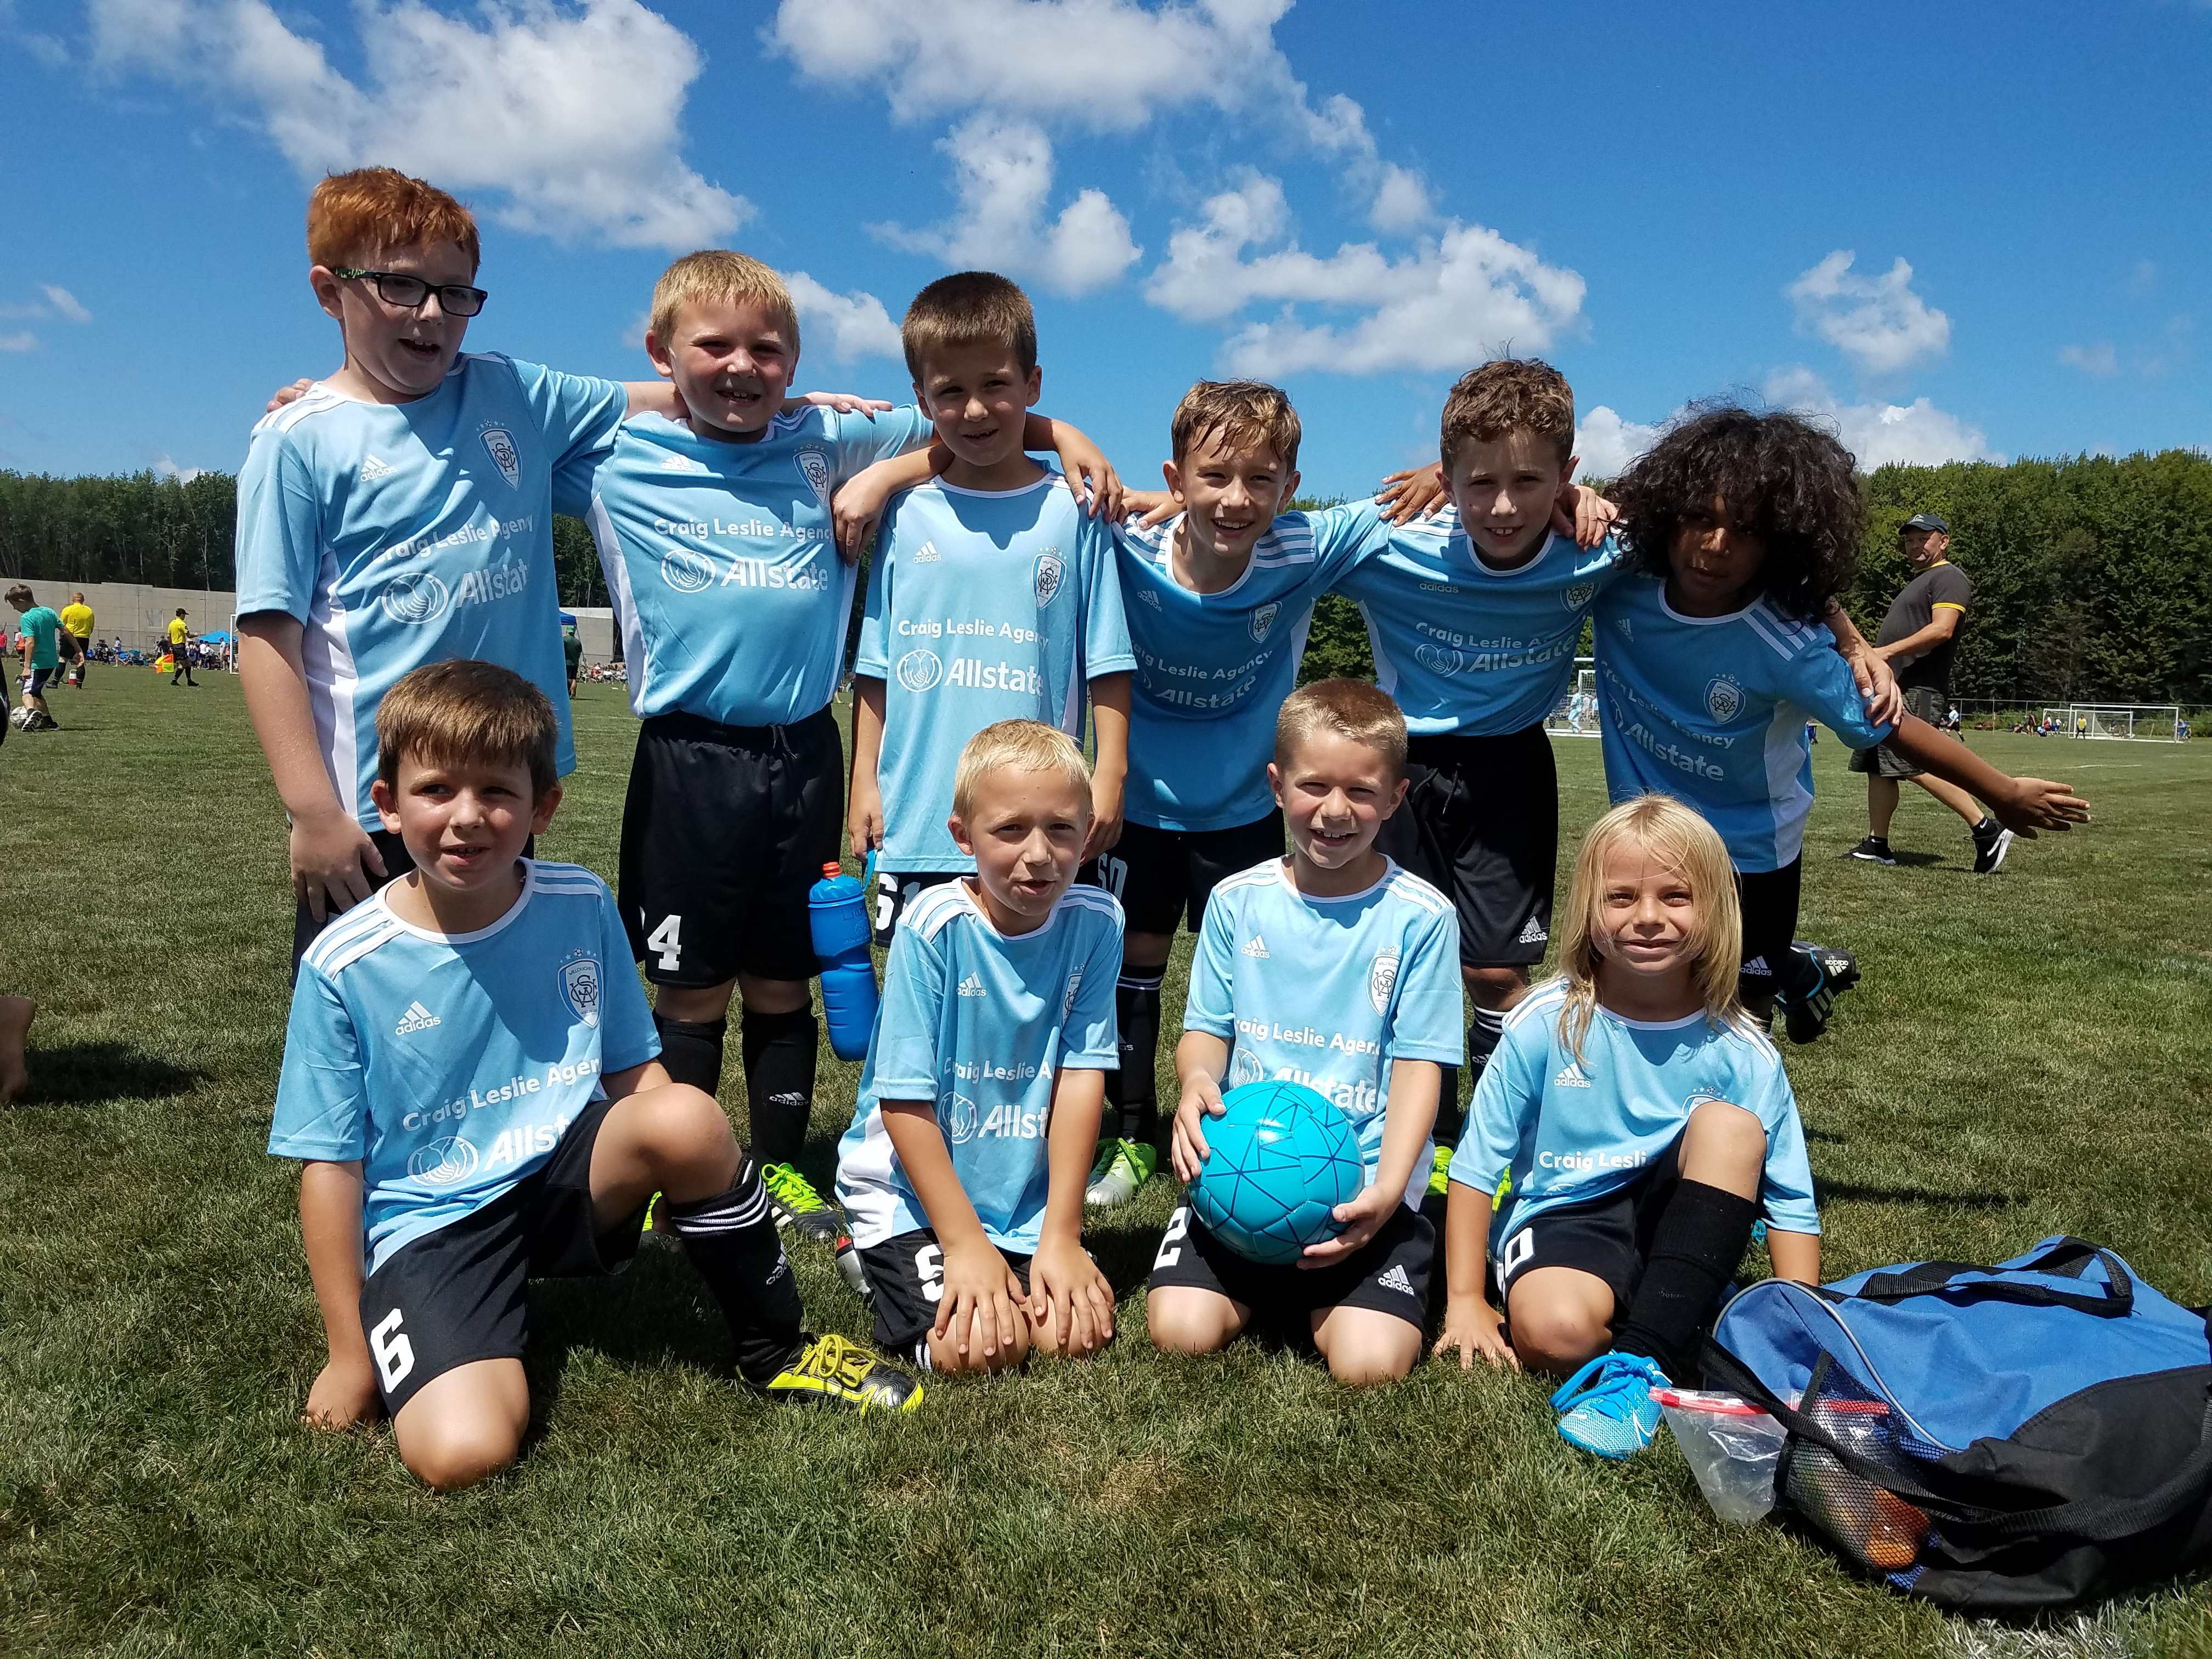 Willoughby Soccer Club